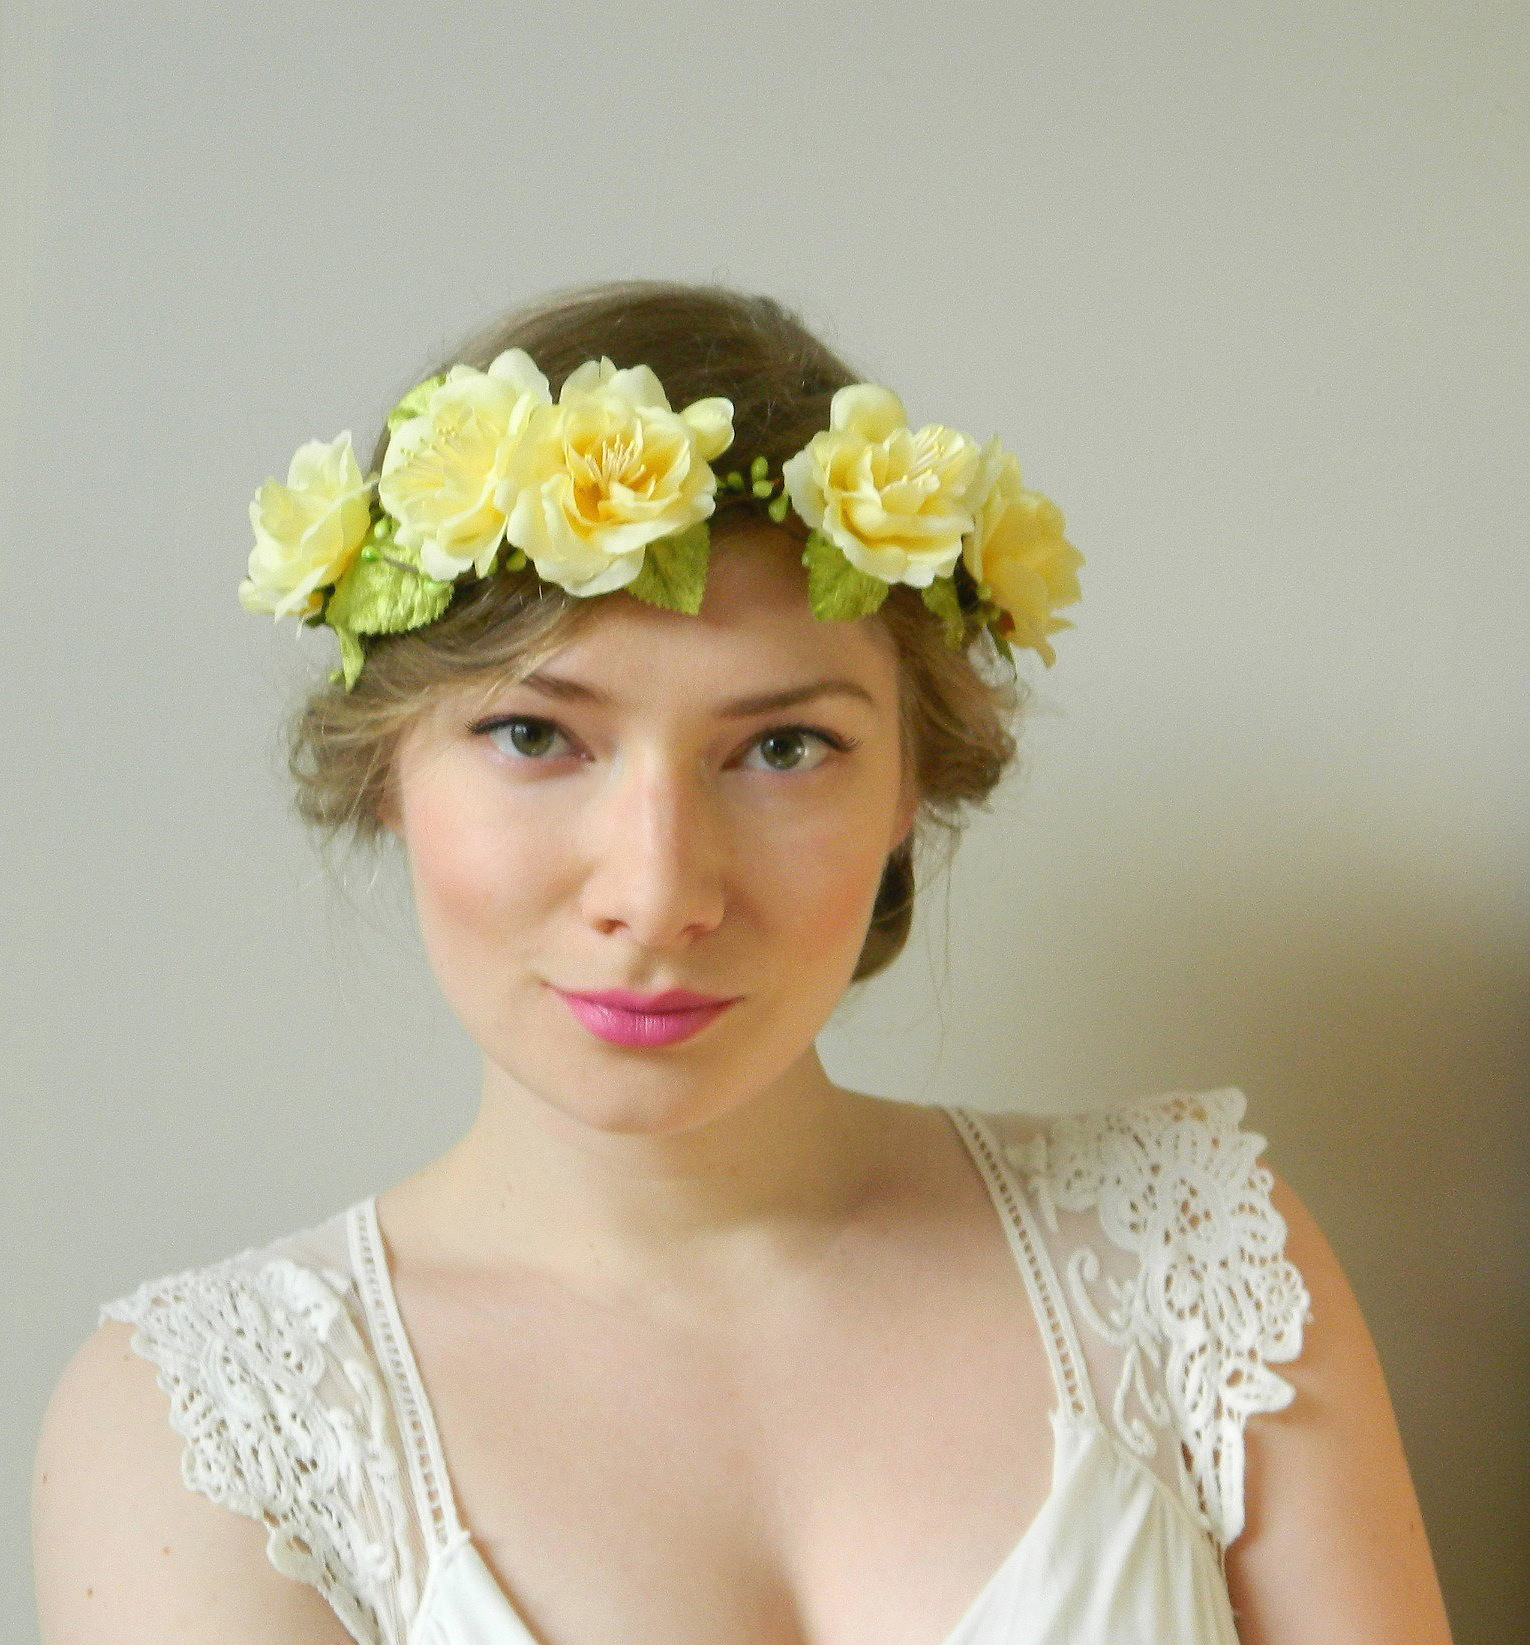 Brighter Days – Yellow Rose Garden Headpiece – Rustic Fairy Hair Crown